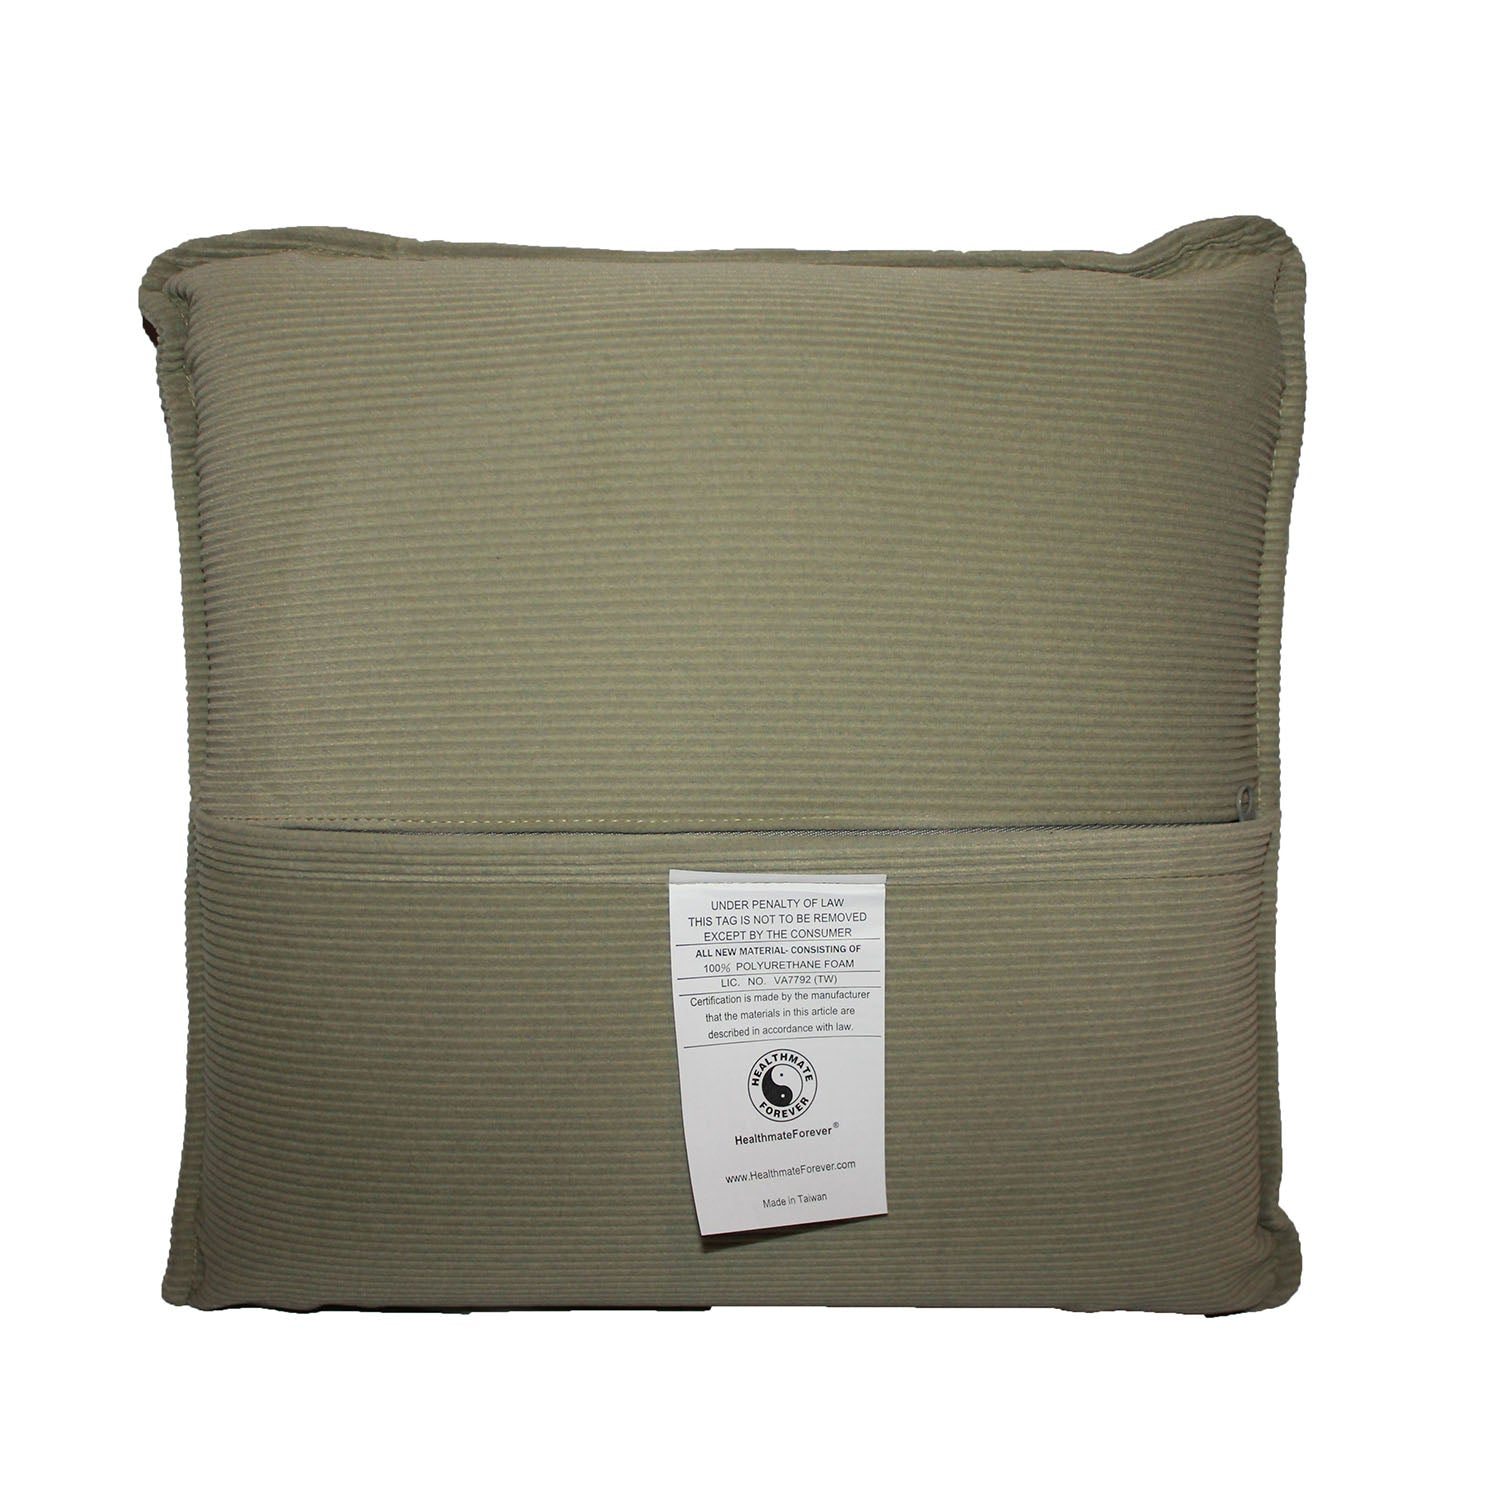 Pressure Activated Massage Pillow Sage Green - HealthmateForever